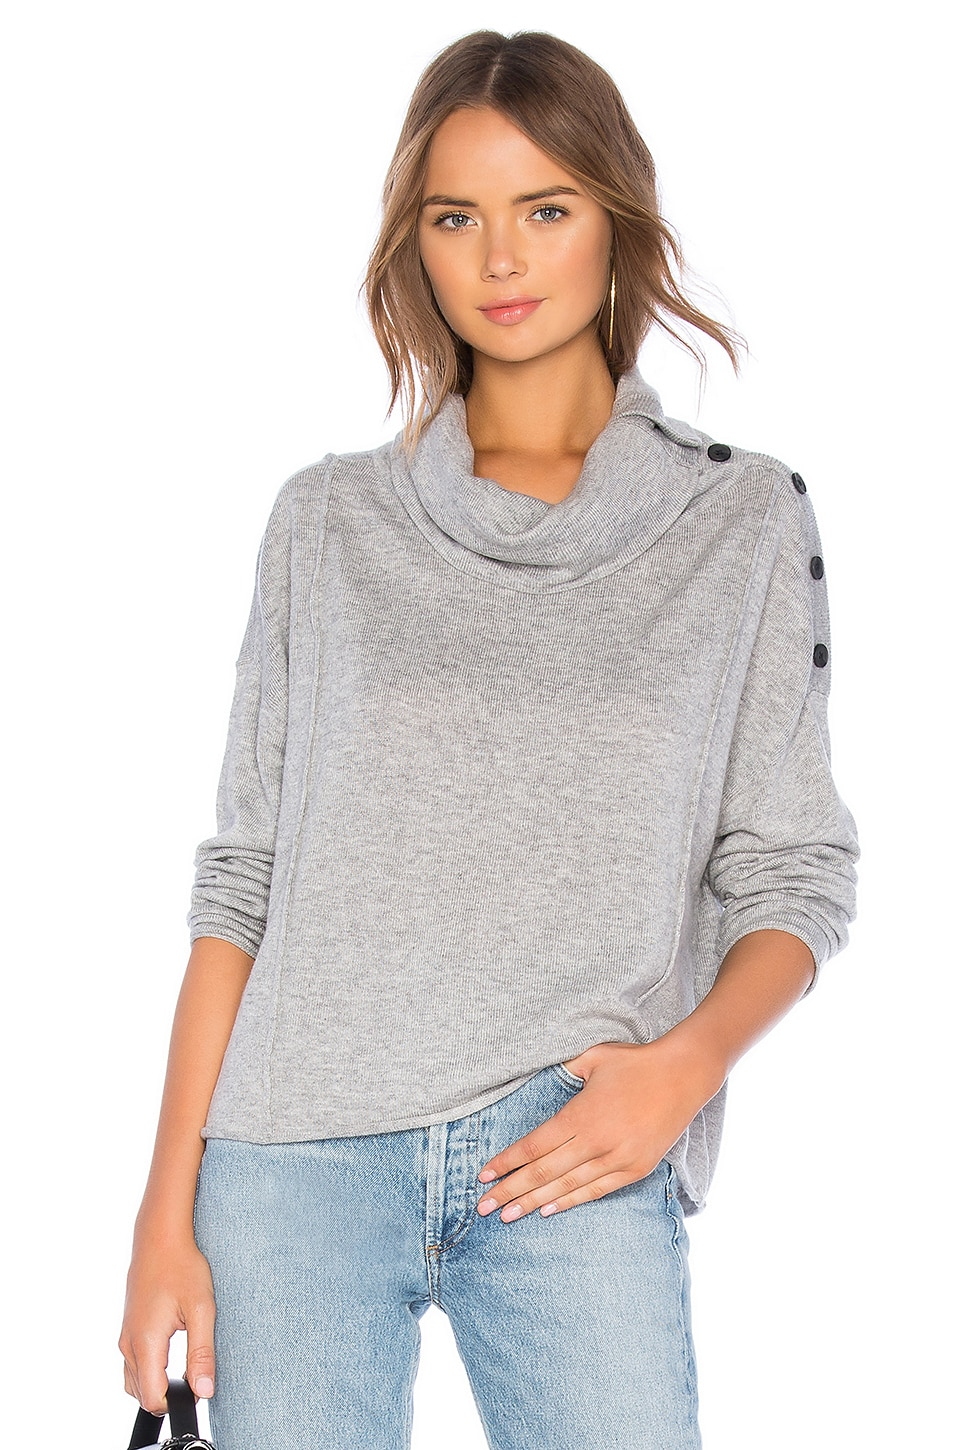 Splendid Runyon Sweater in Heather Grey